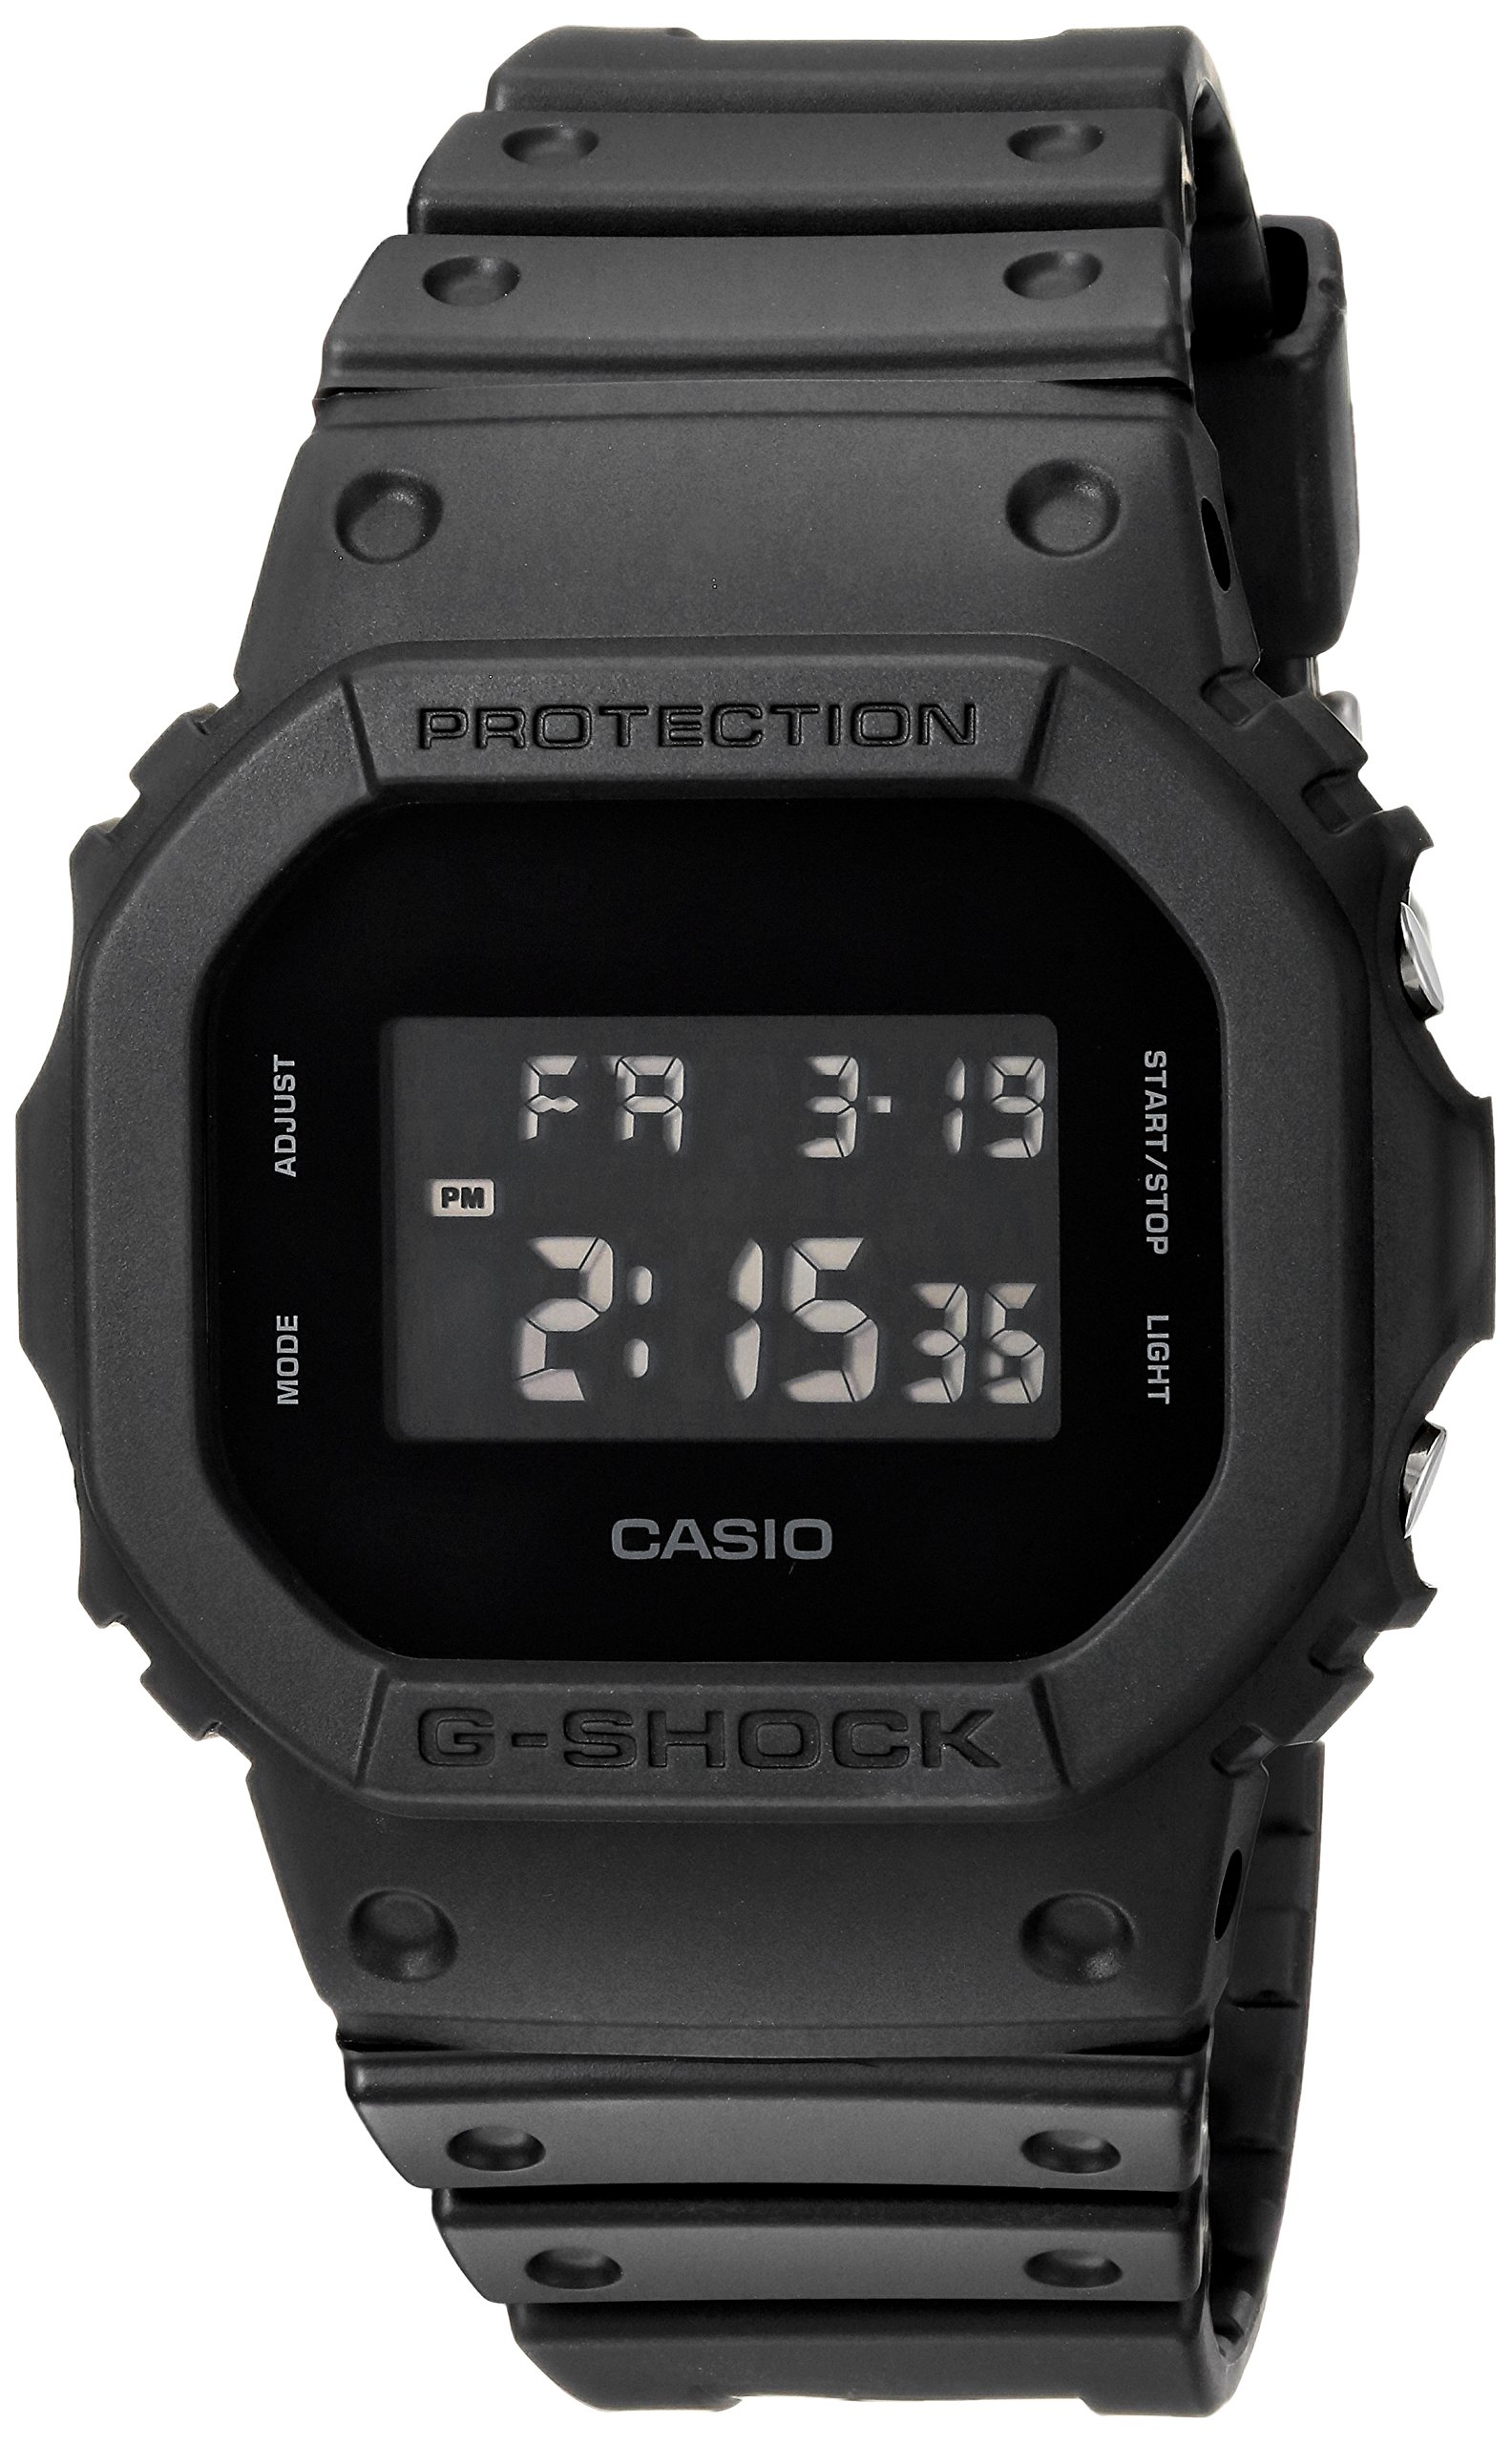 Casio Men's G Shock Quartz Watch with Resin Strap, Black, 30 (Model: DW-5600BB-1CR) by Casio (Image #1)